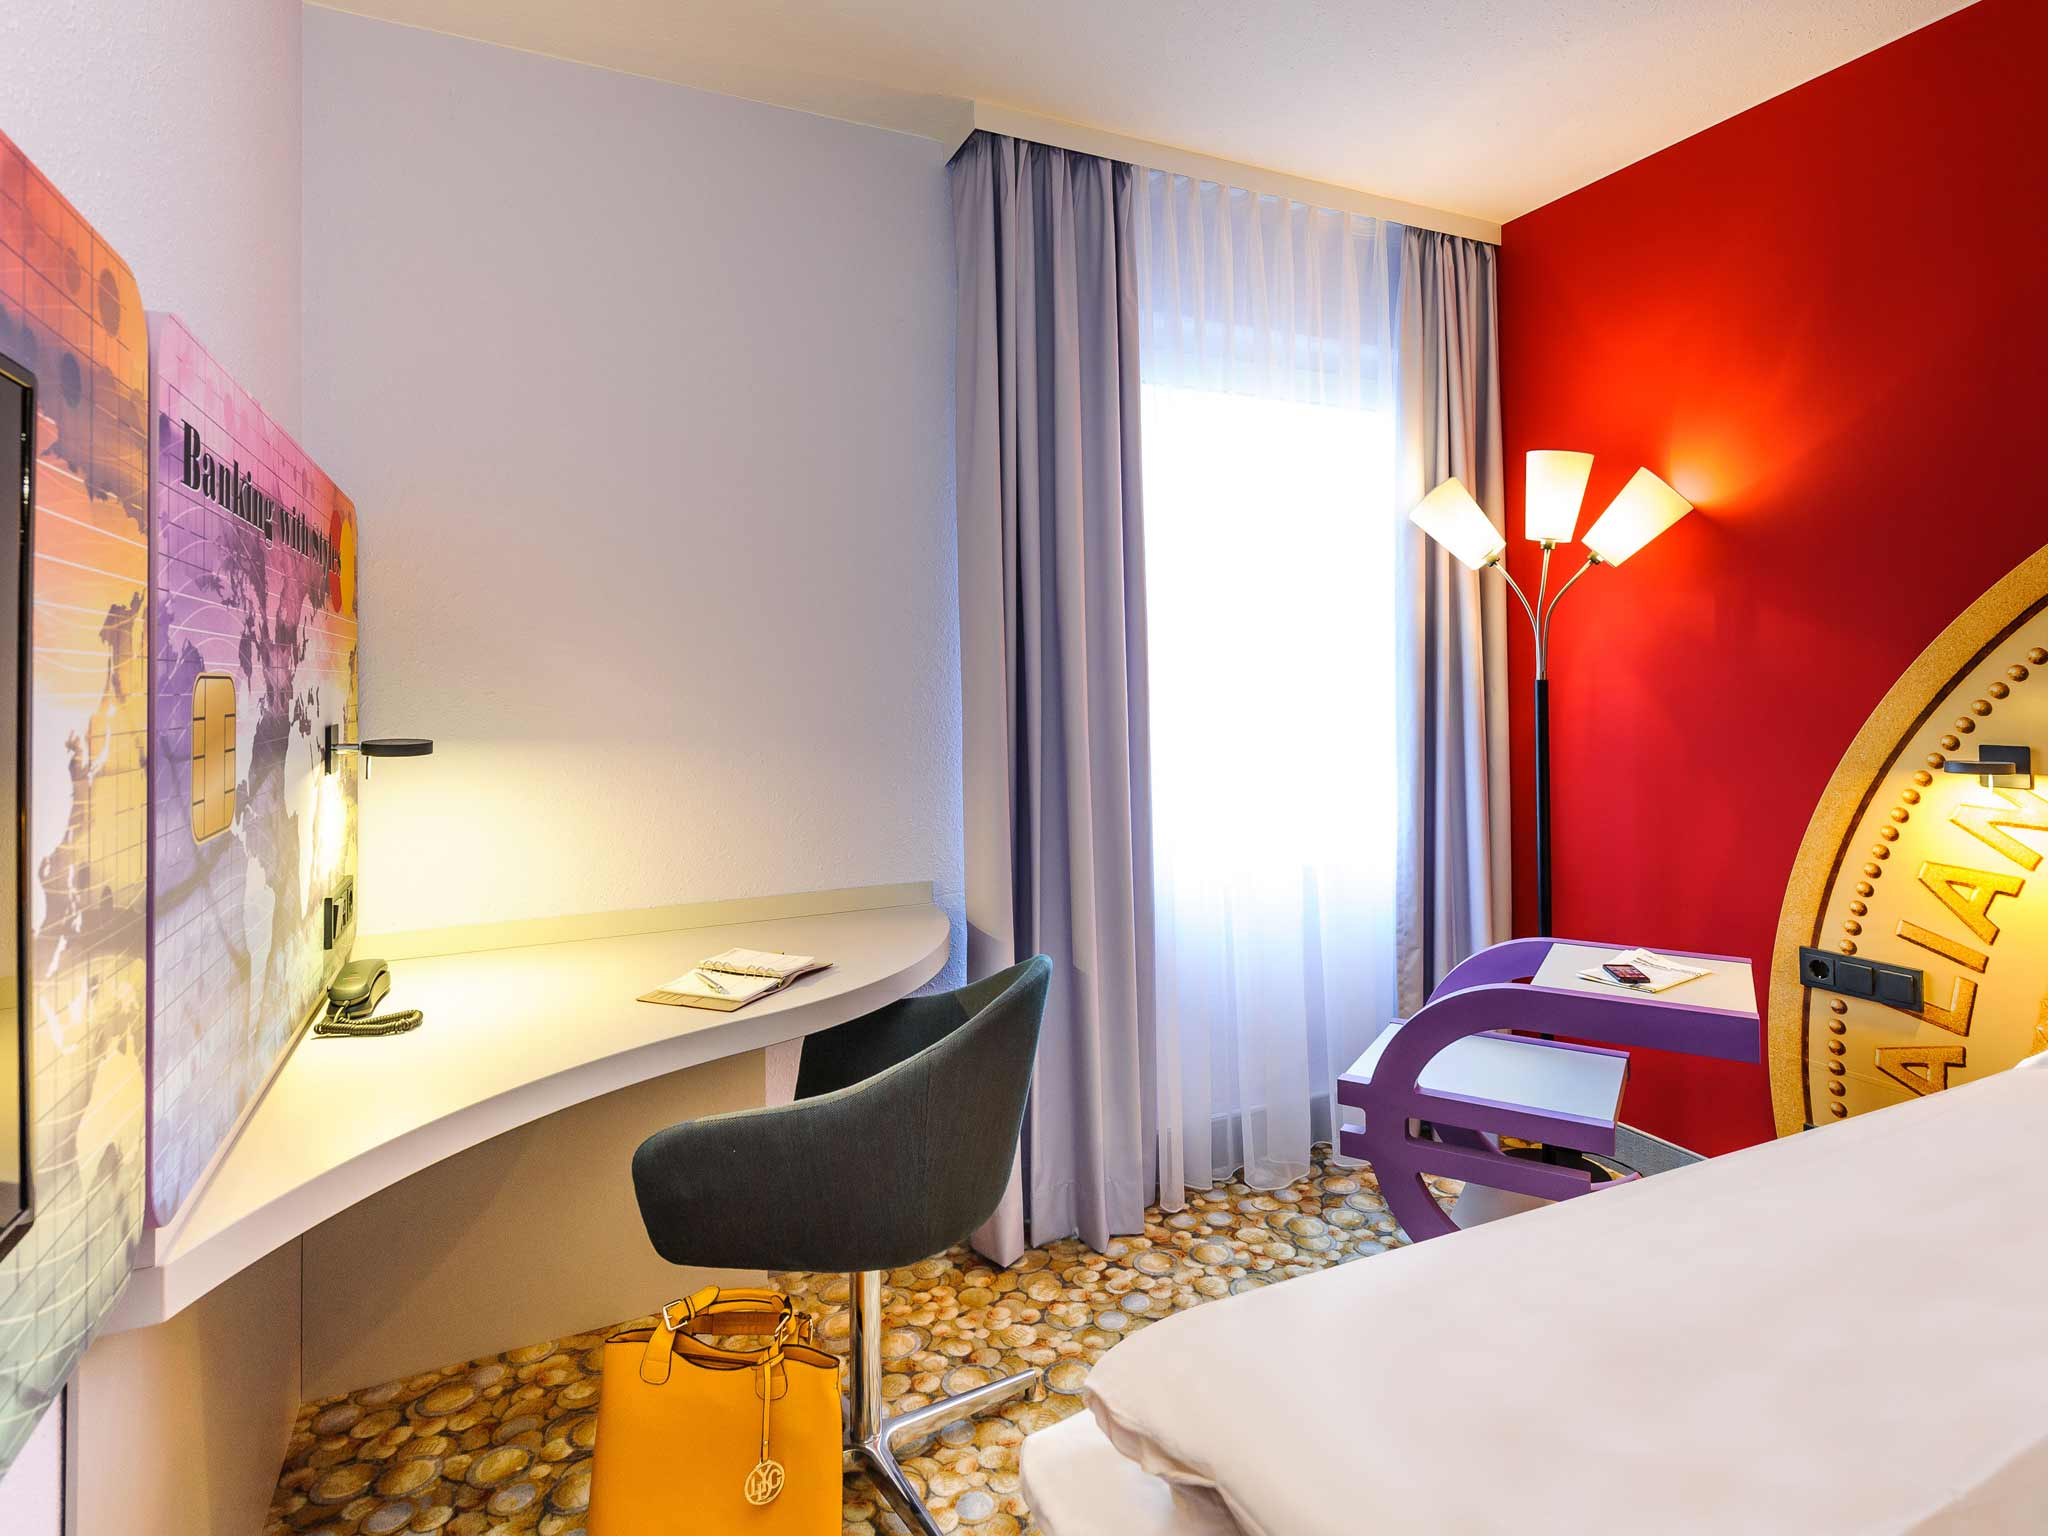 Ibis Styles Hotels Offenbach